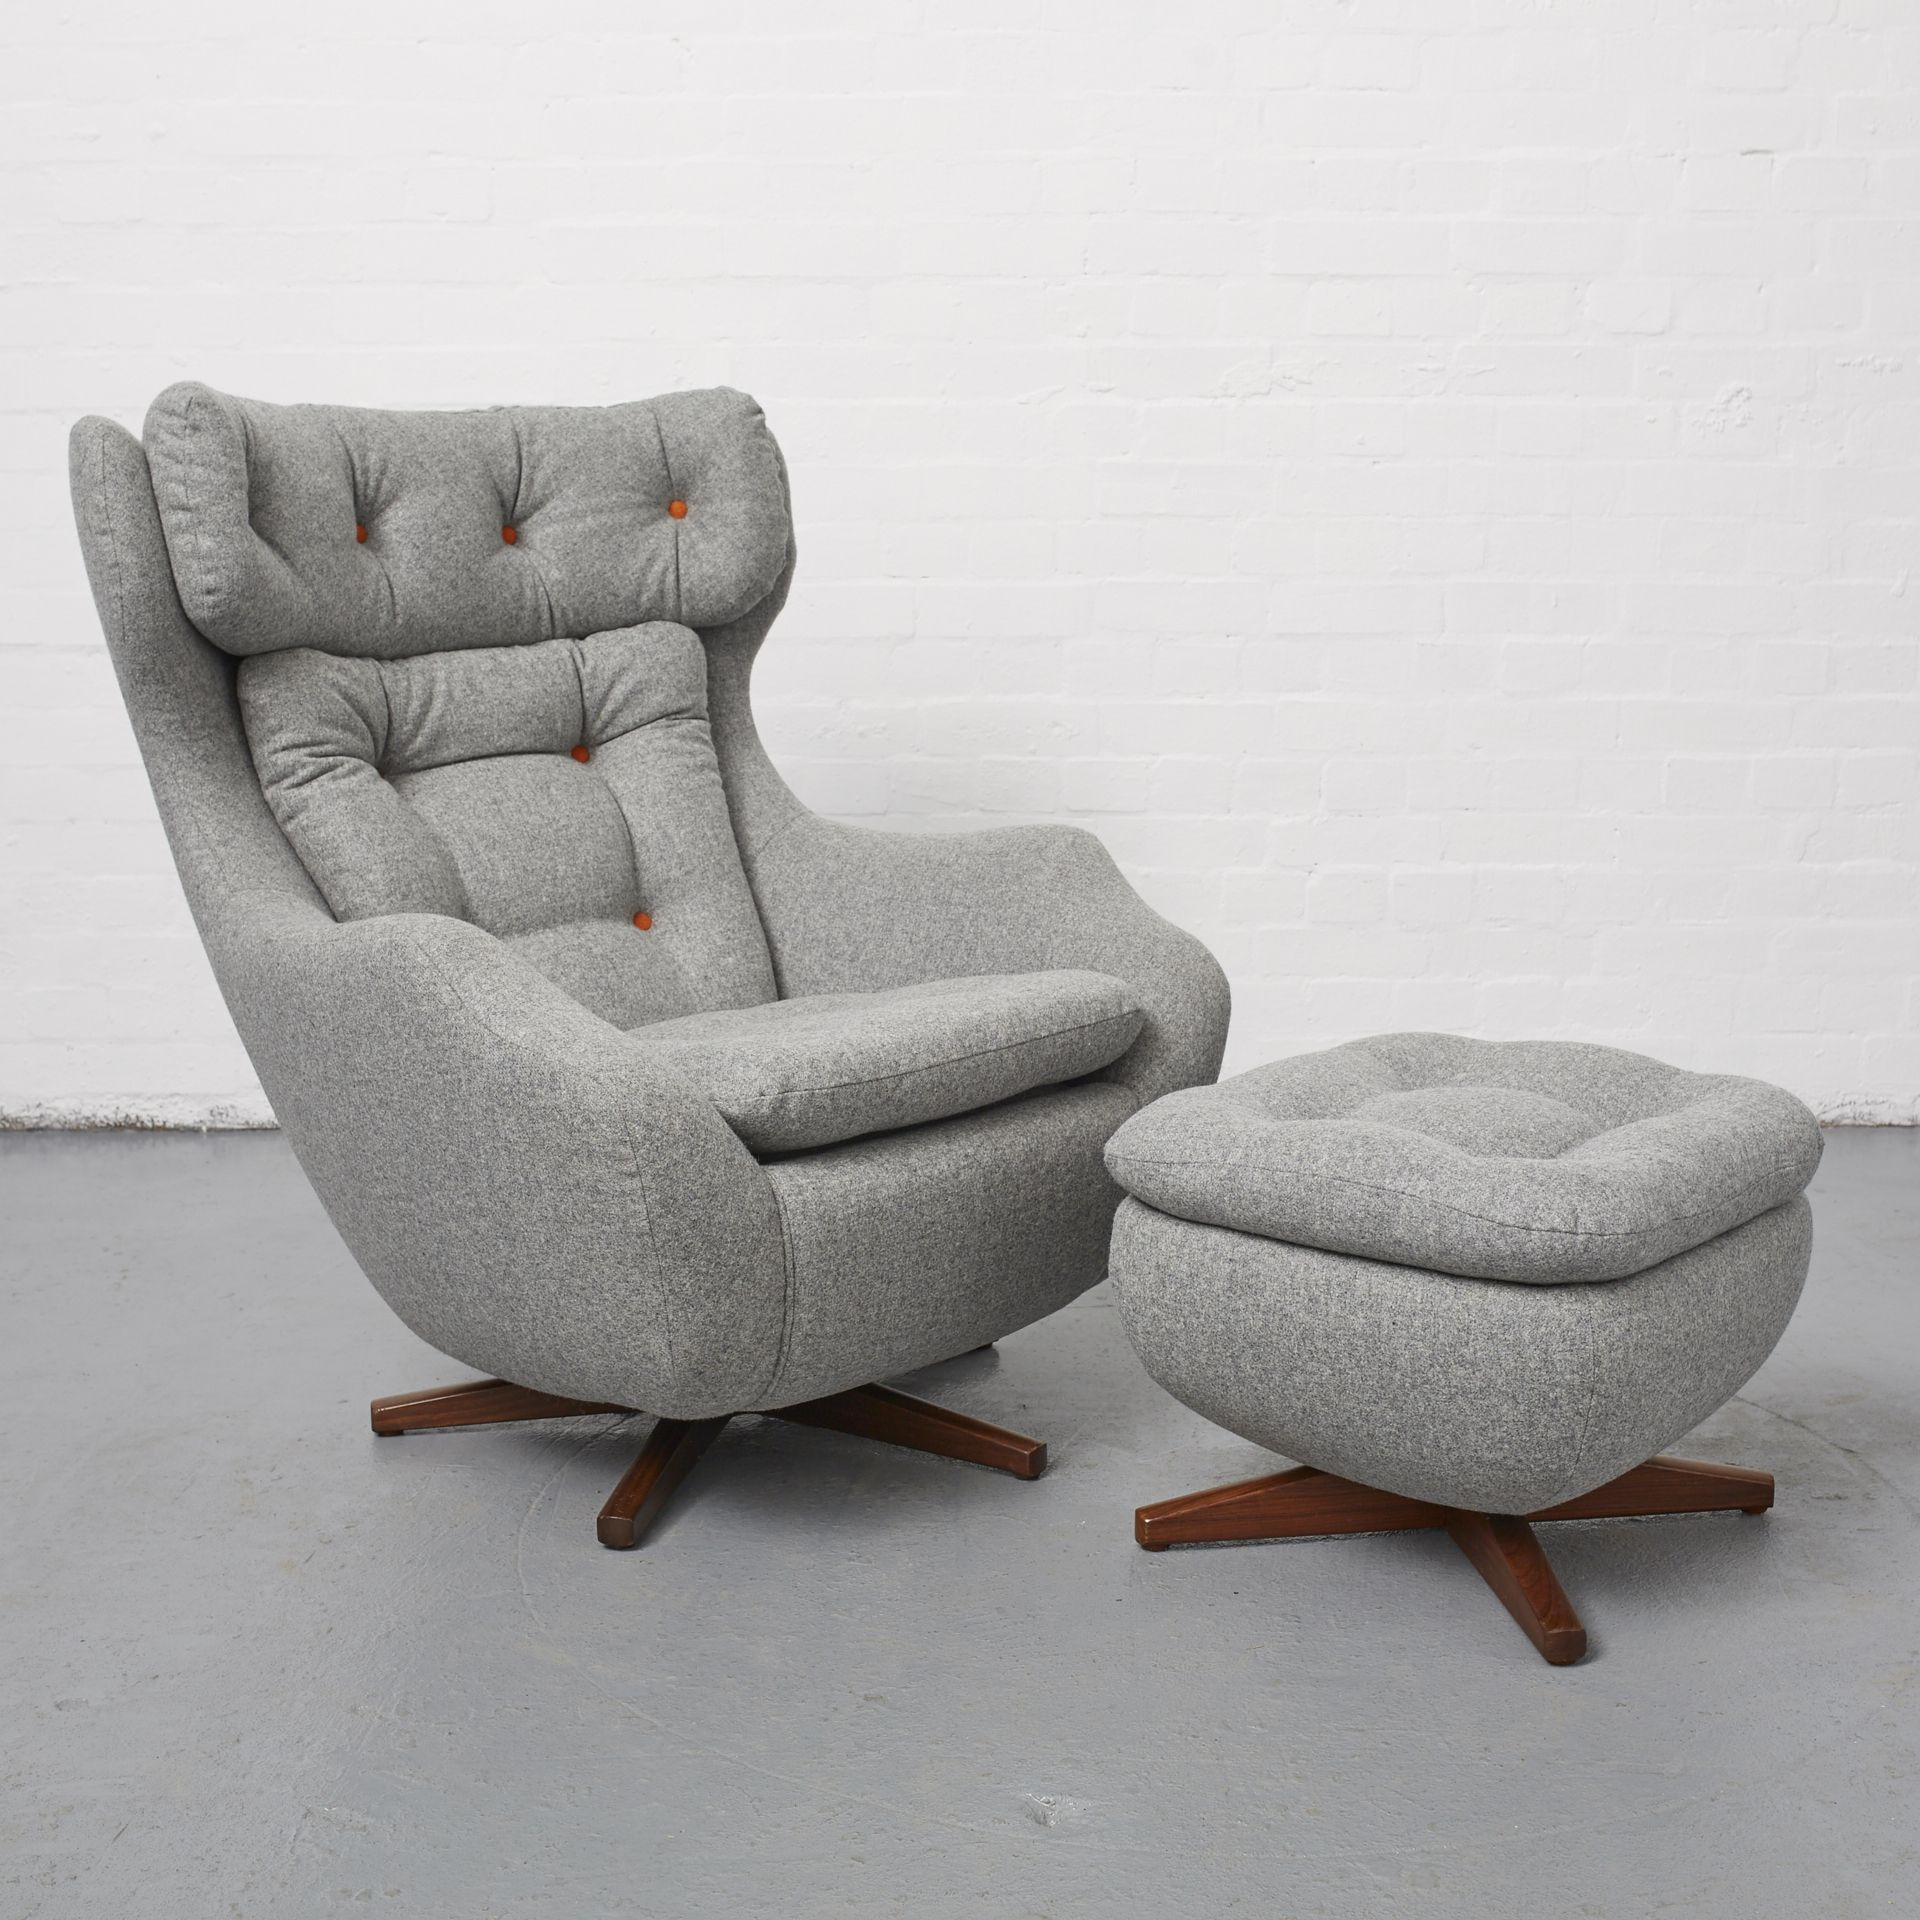 Parker Knoll 1028 vintage Statesman chair and footstool after